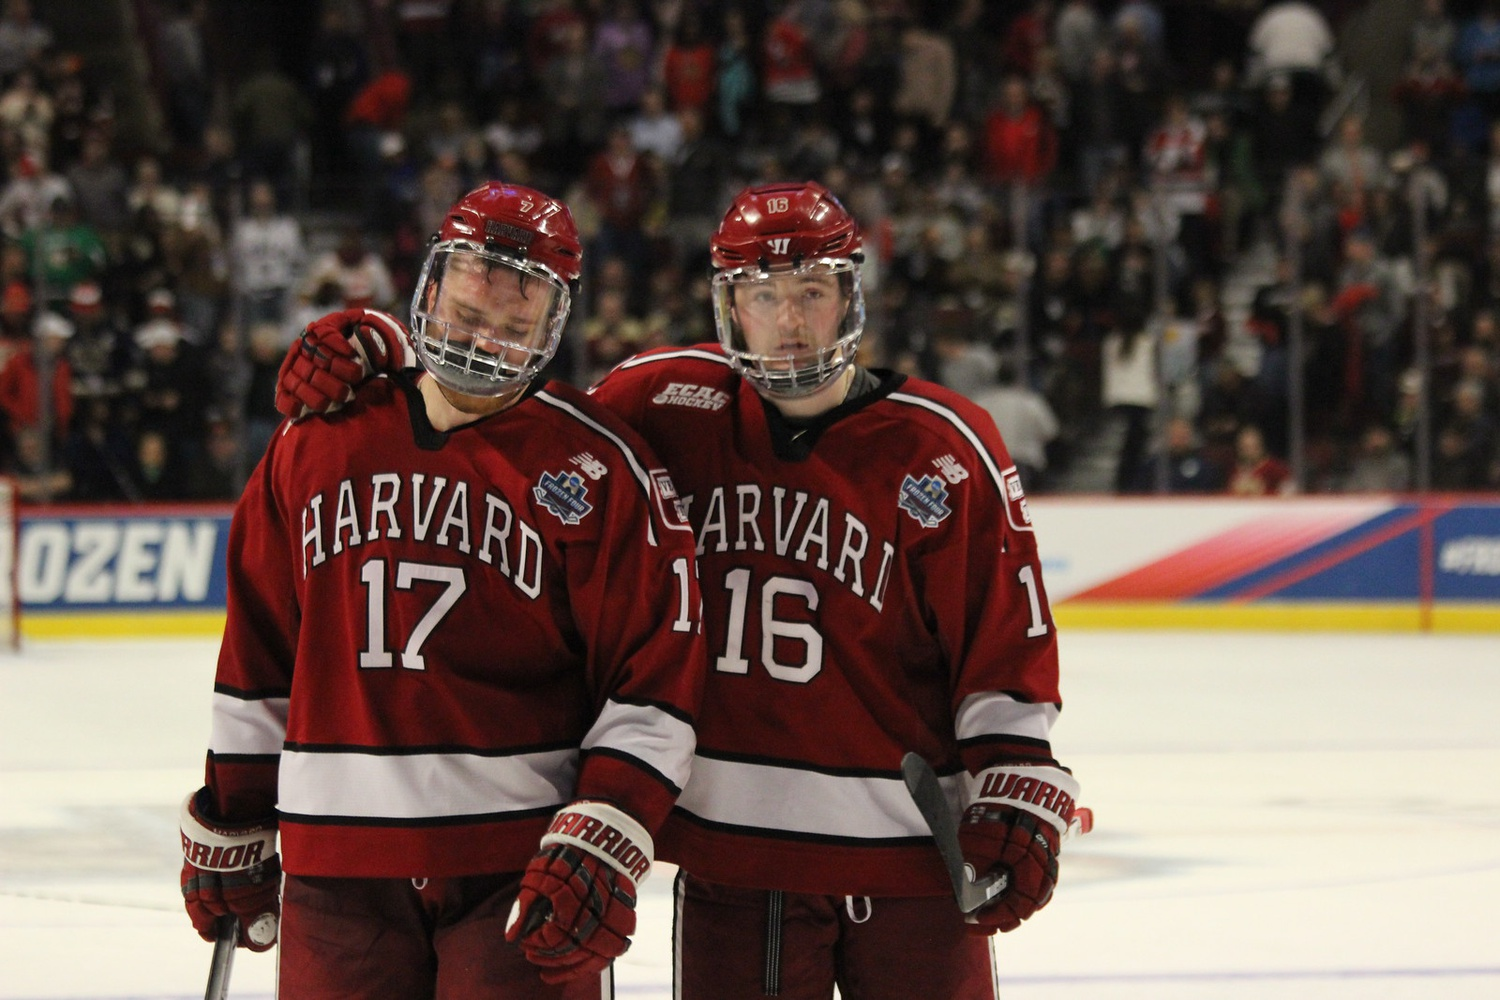 The last time the Crimson appeared in the NCAA Tournament, an impressive run ended in heartbreak. Then-sophomore Ryan Donato (right) and Sean Malone '17 (left), a senior at the time, were speechless after falling to Minnesota Duluth in 2017's Frozen Four.